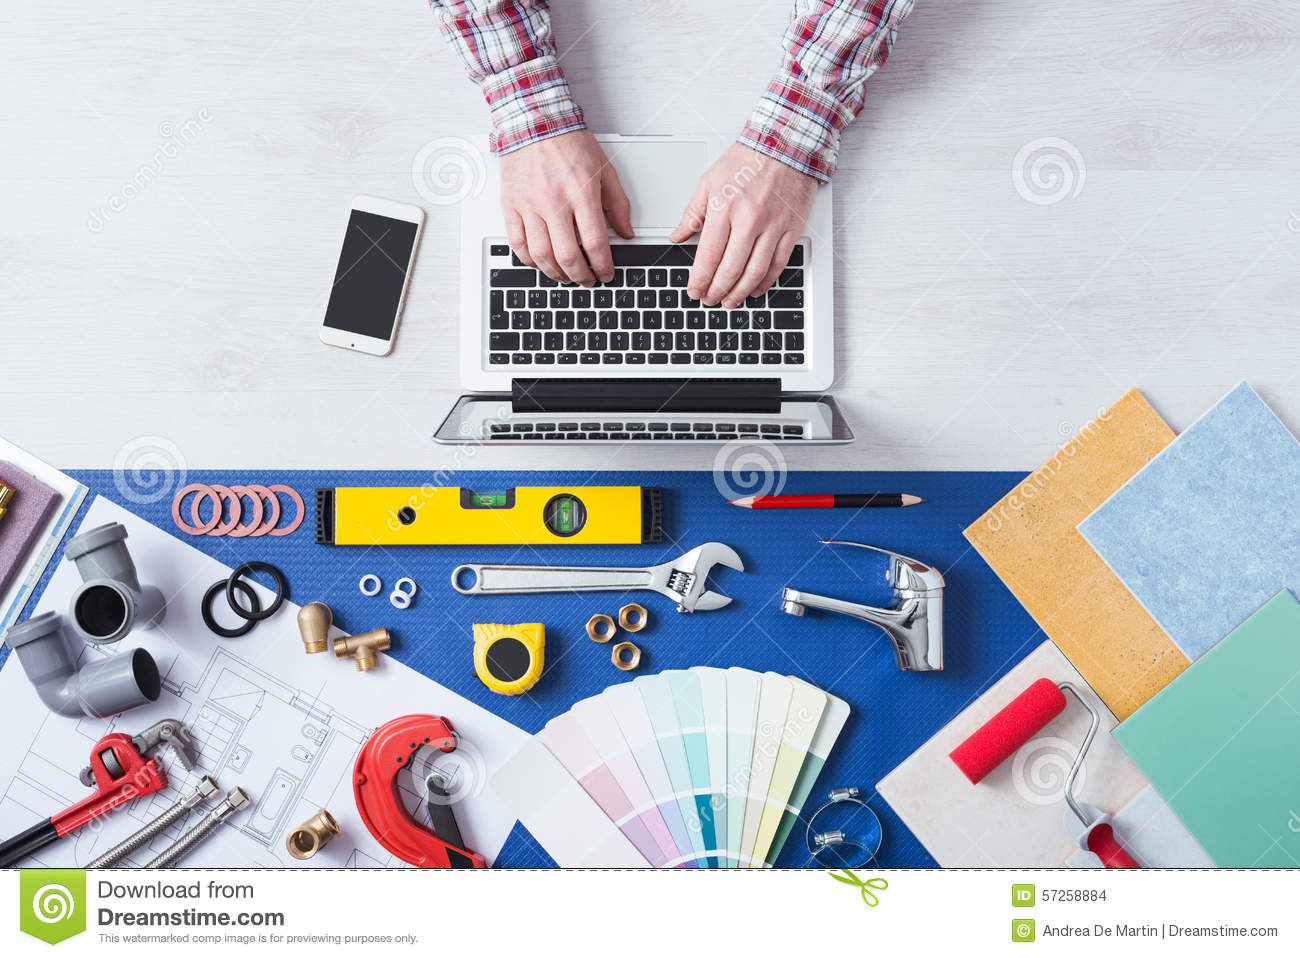 Book a plumber online stock photo. Image of mobile, equipment - 57258884